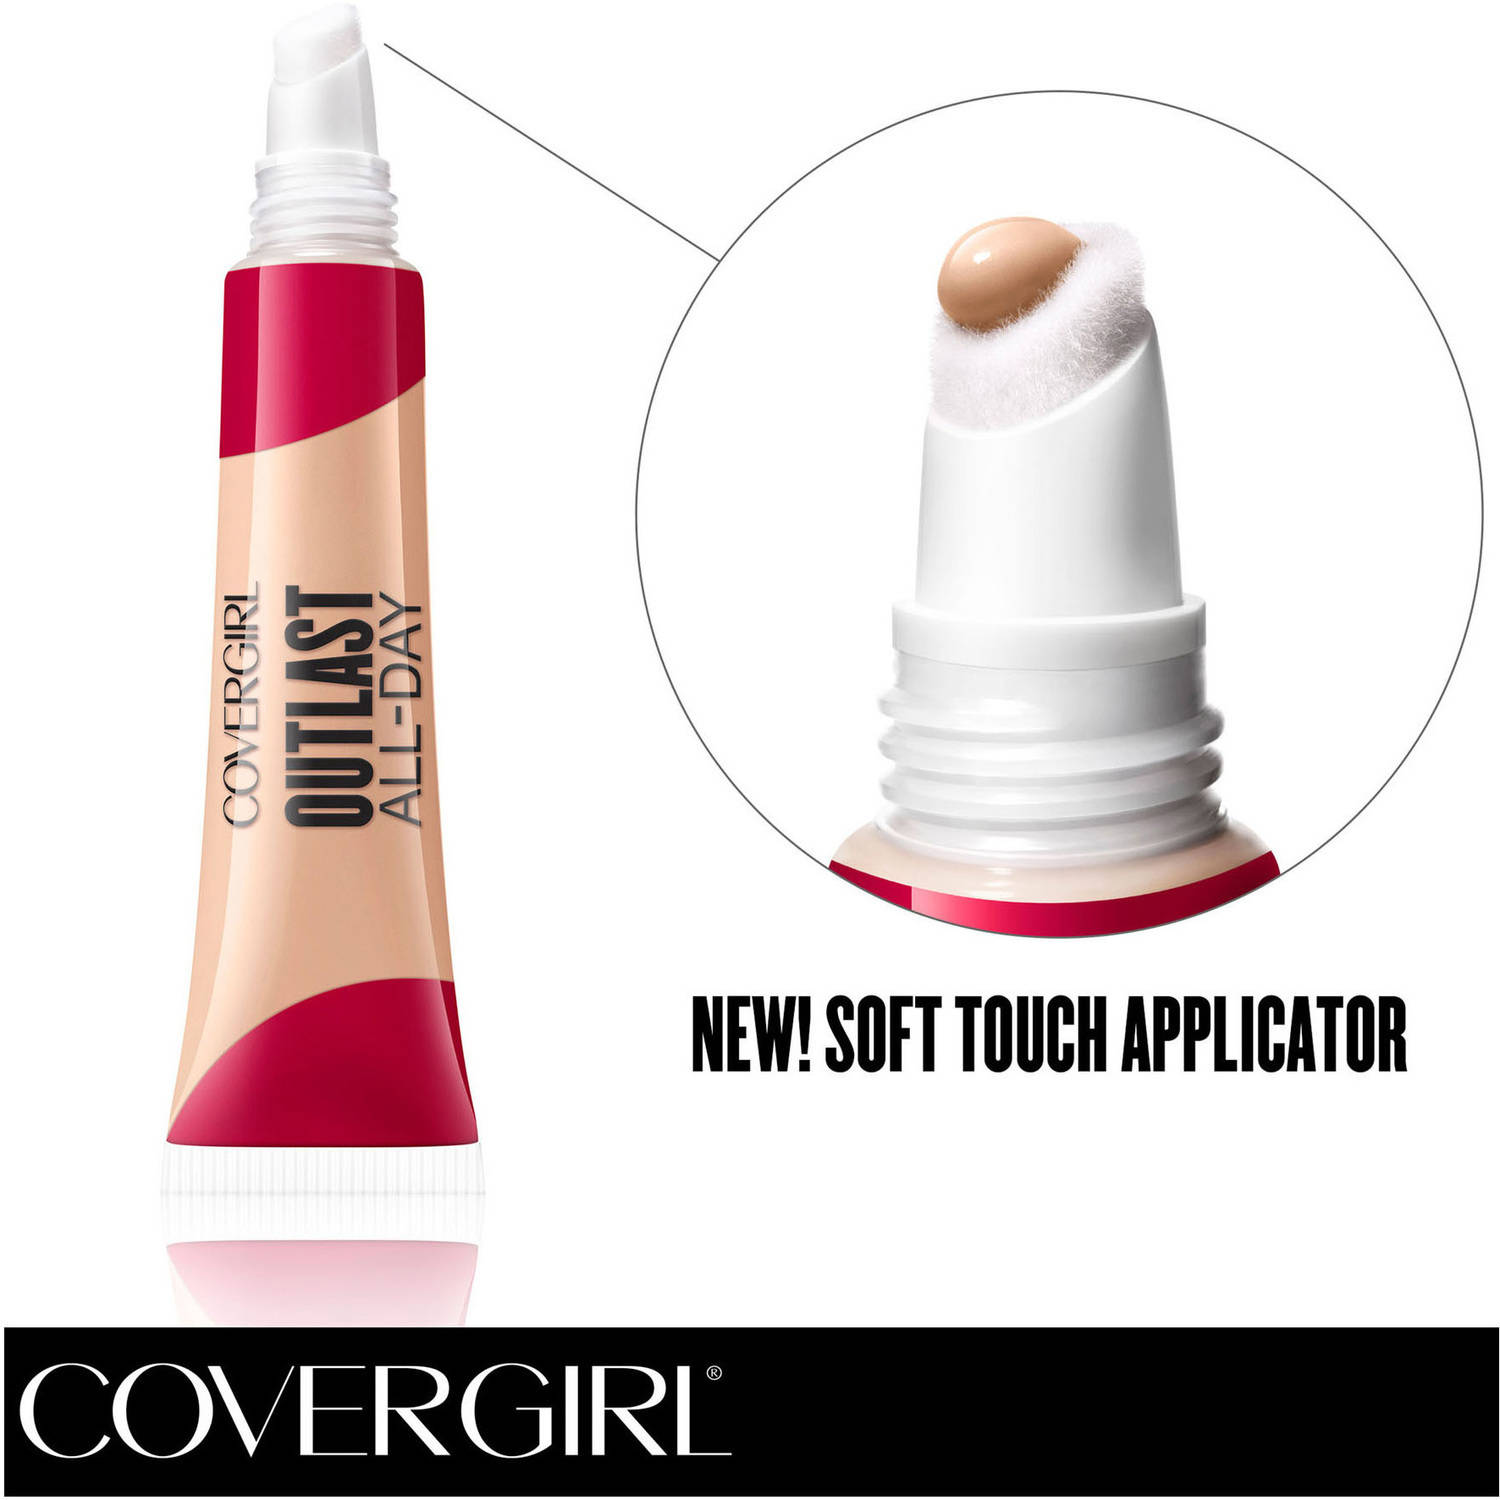 COVERGIRL Outlast All-Day Soft Touch Concealer, 0.34 fl oz